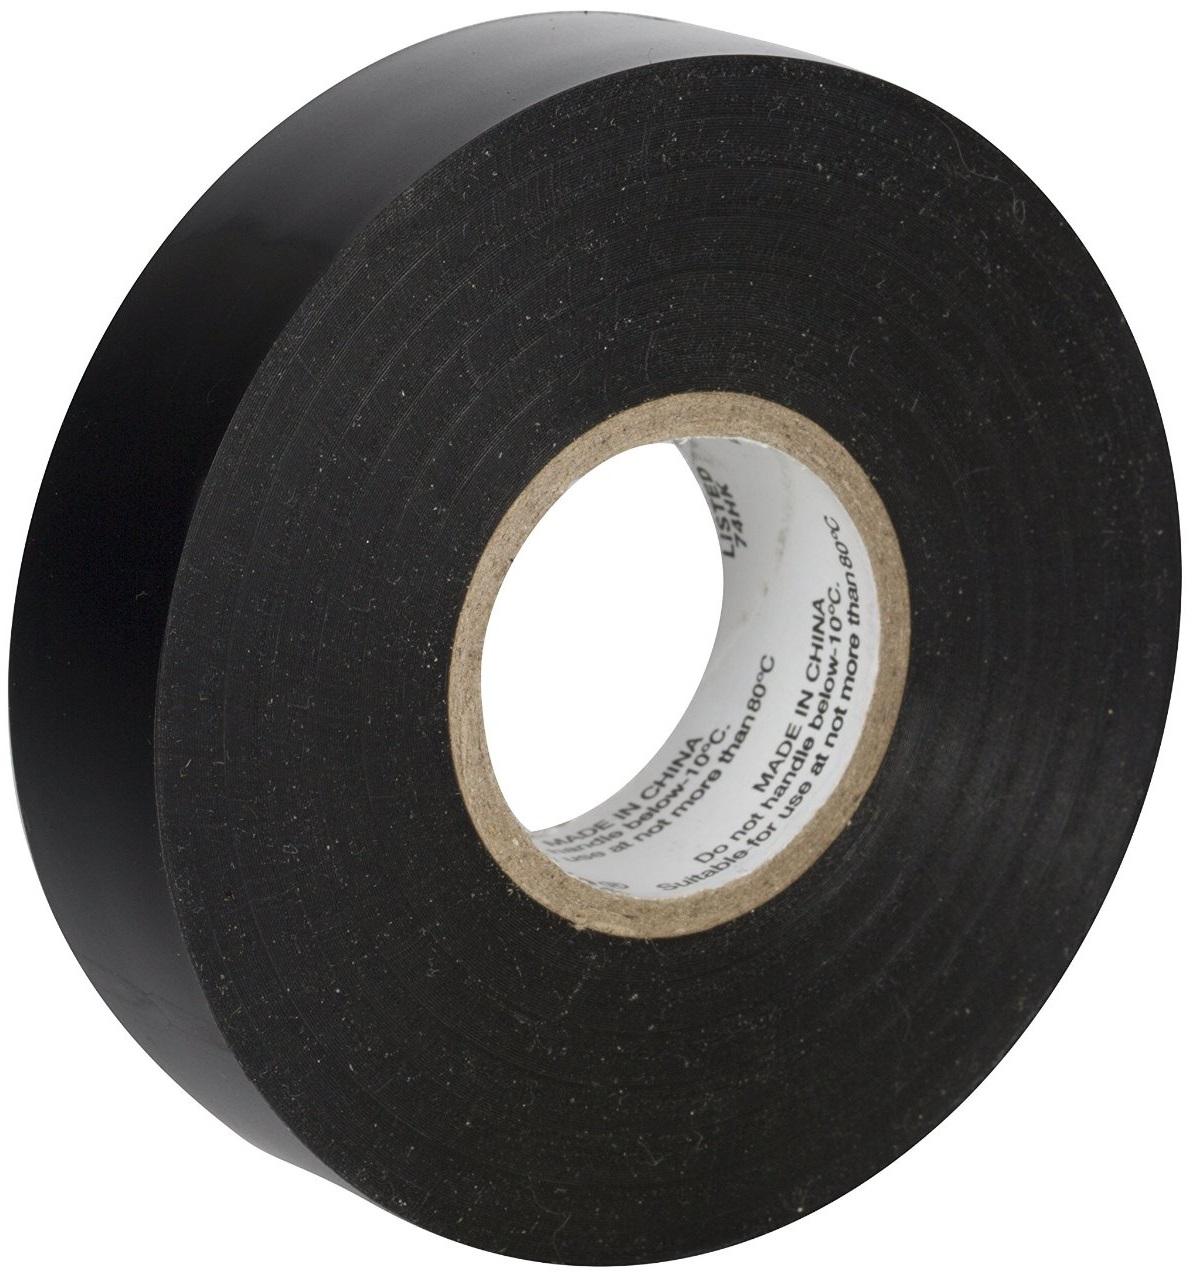 Shurtech Brands 668 3/4-Inch x 66-Ft. Premium Vinyl Cold Weather Electrical Tape